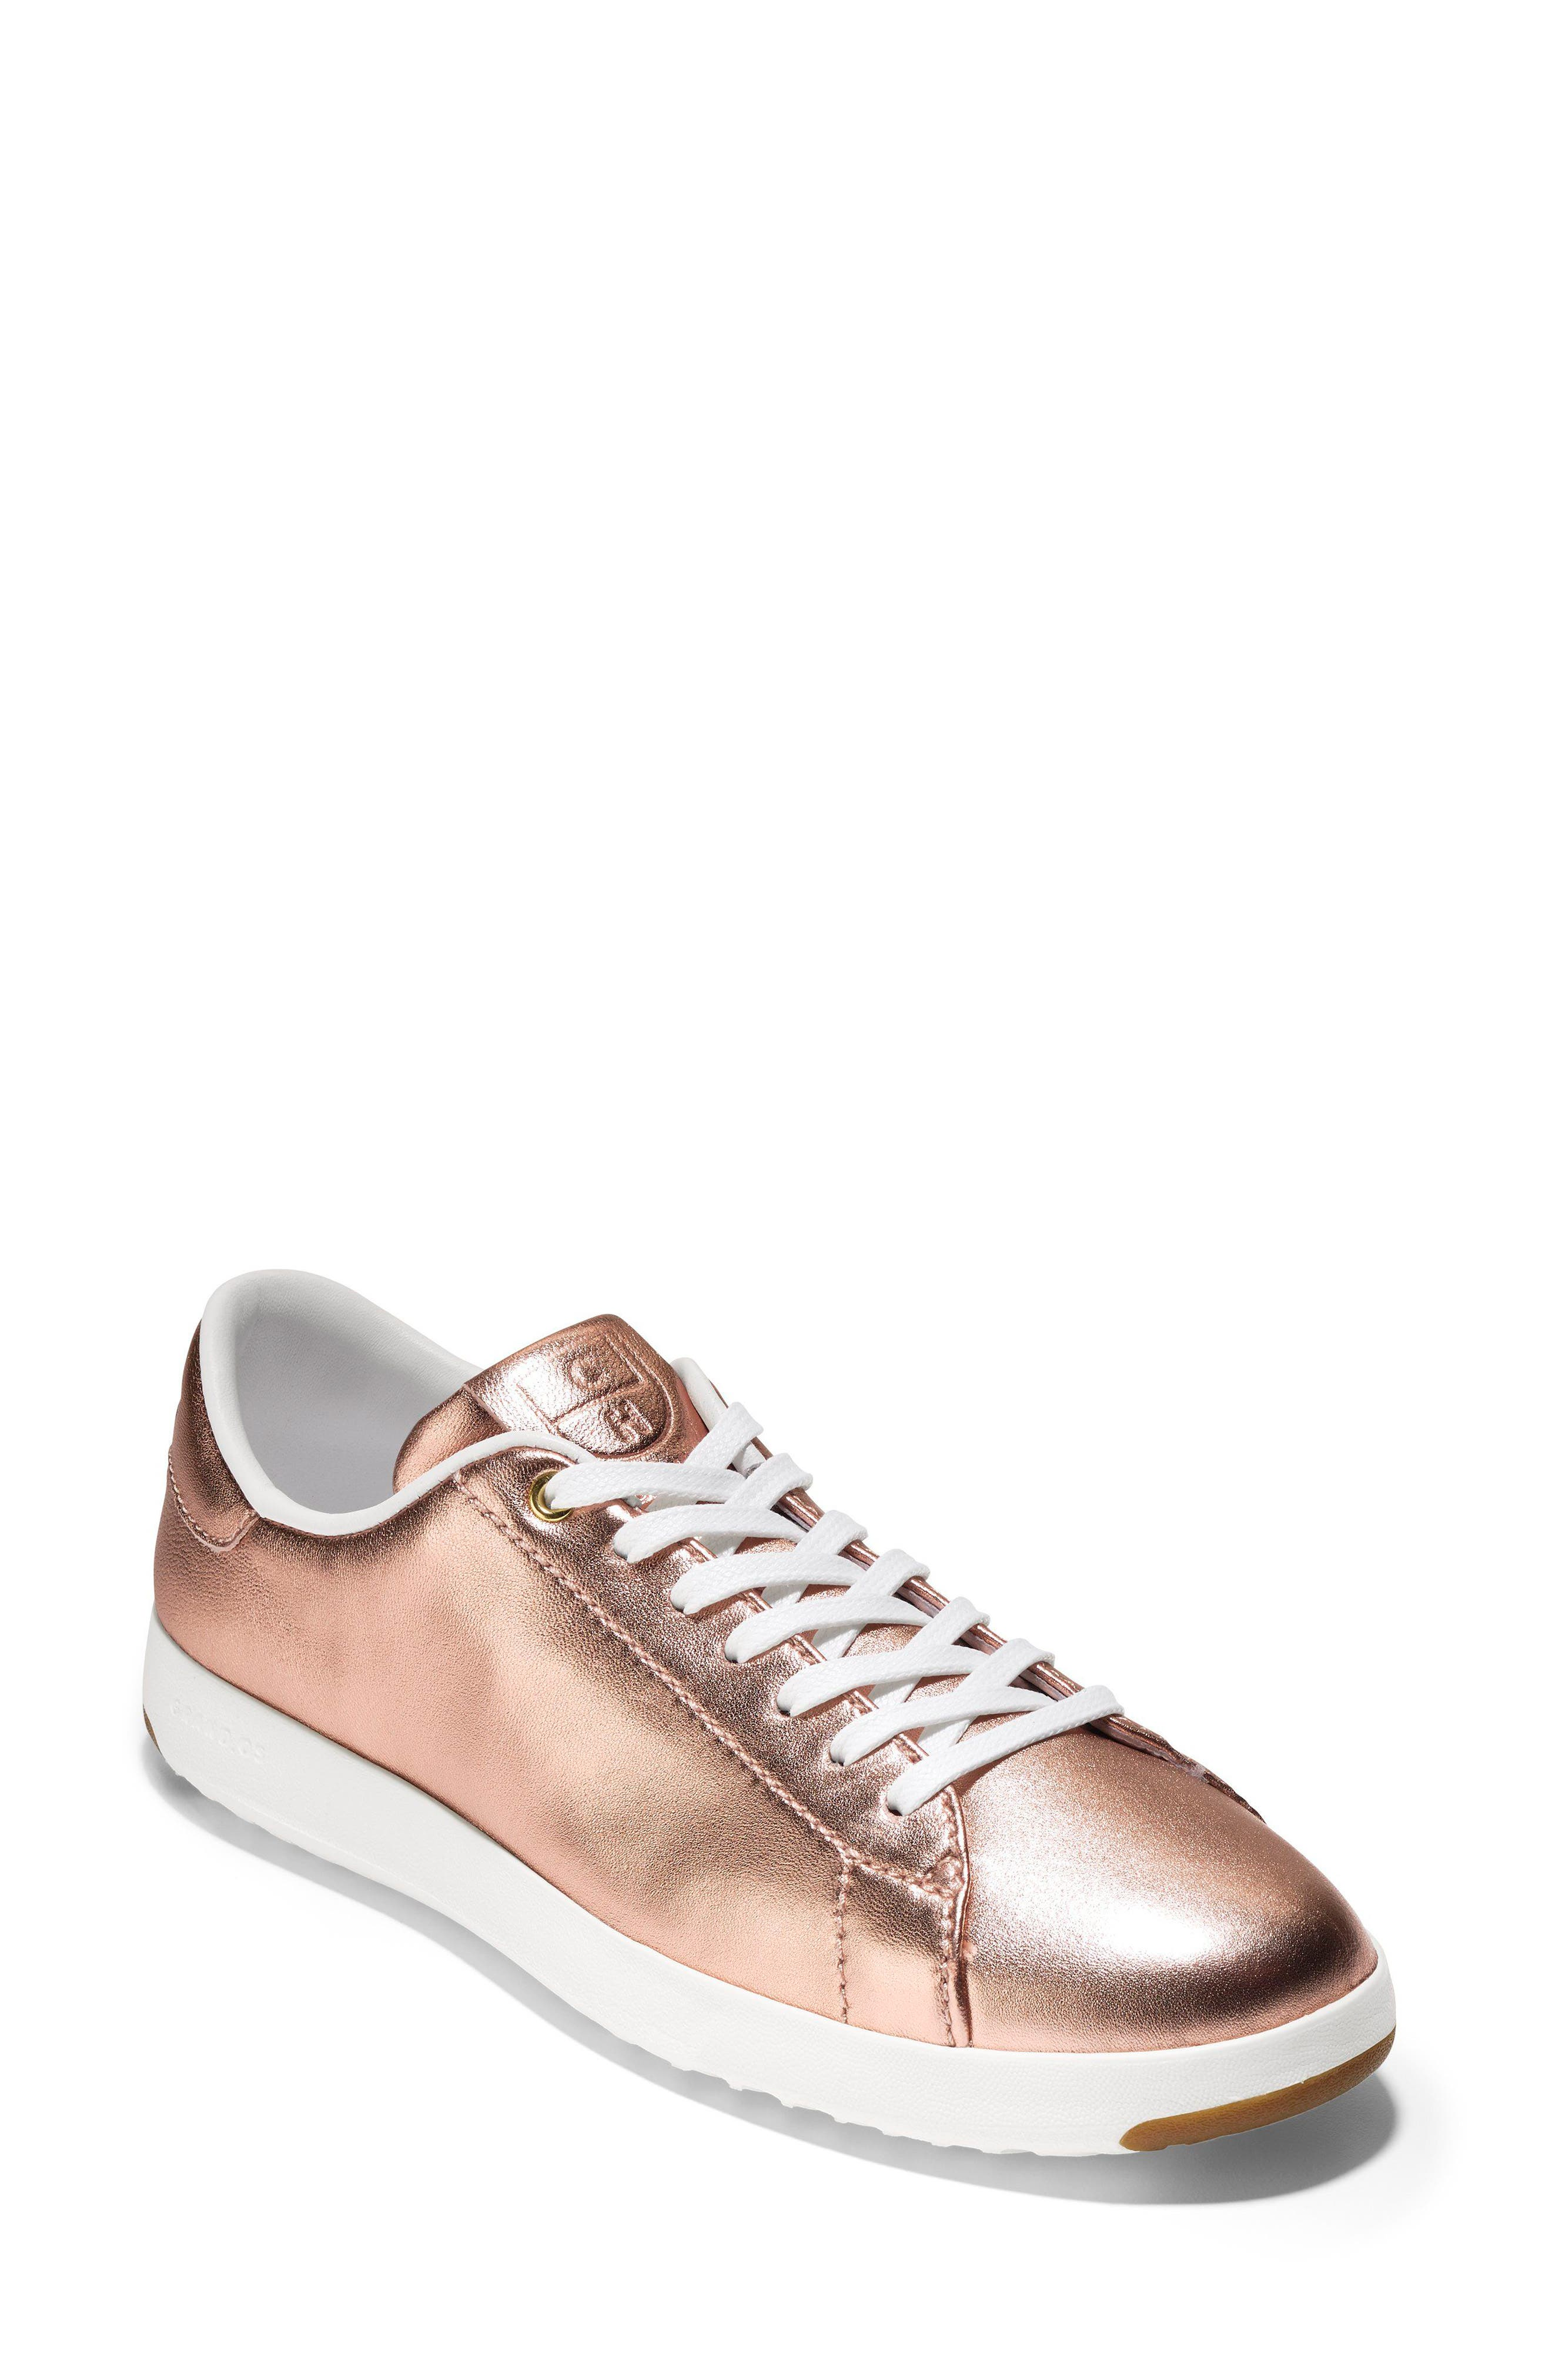 GrandPro Tennis Shoe,                             Main thumbnail 1, color,                             ROSE GOLD LEATHER